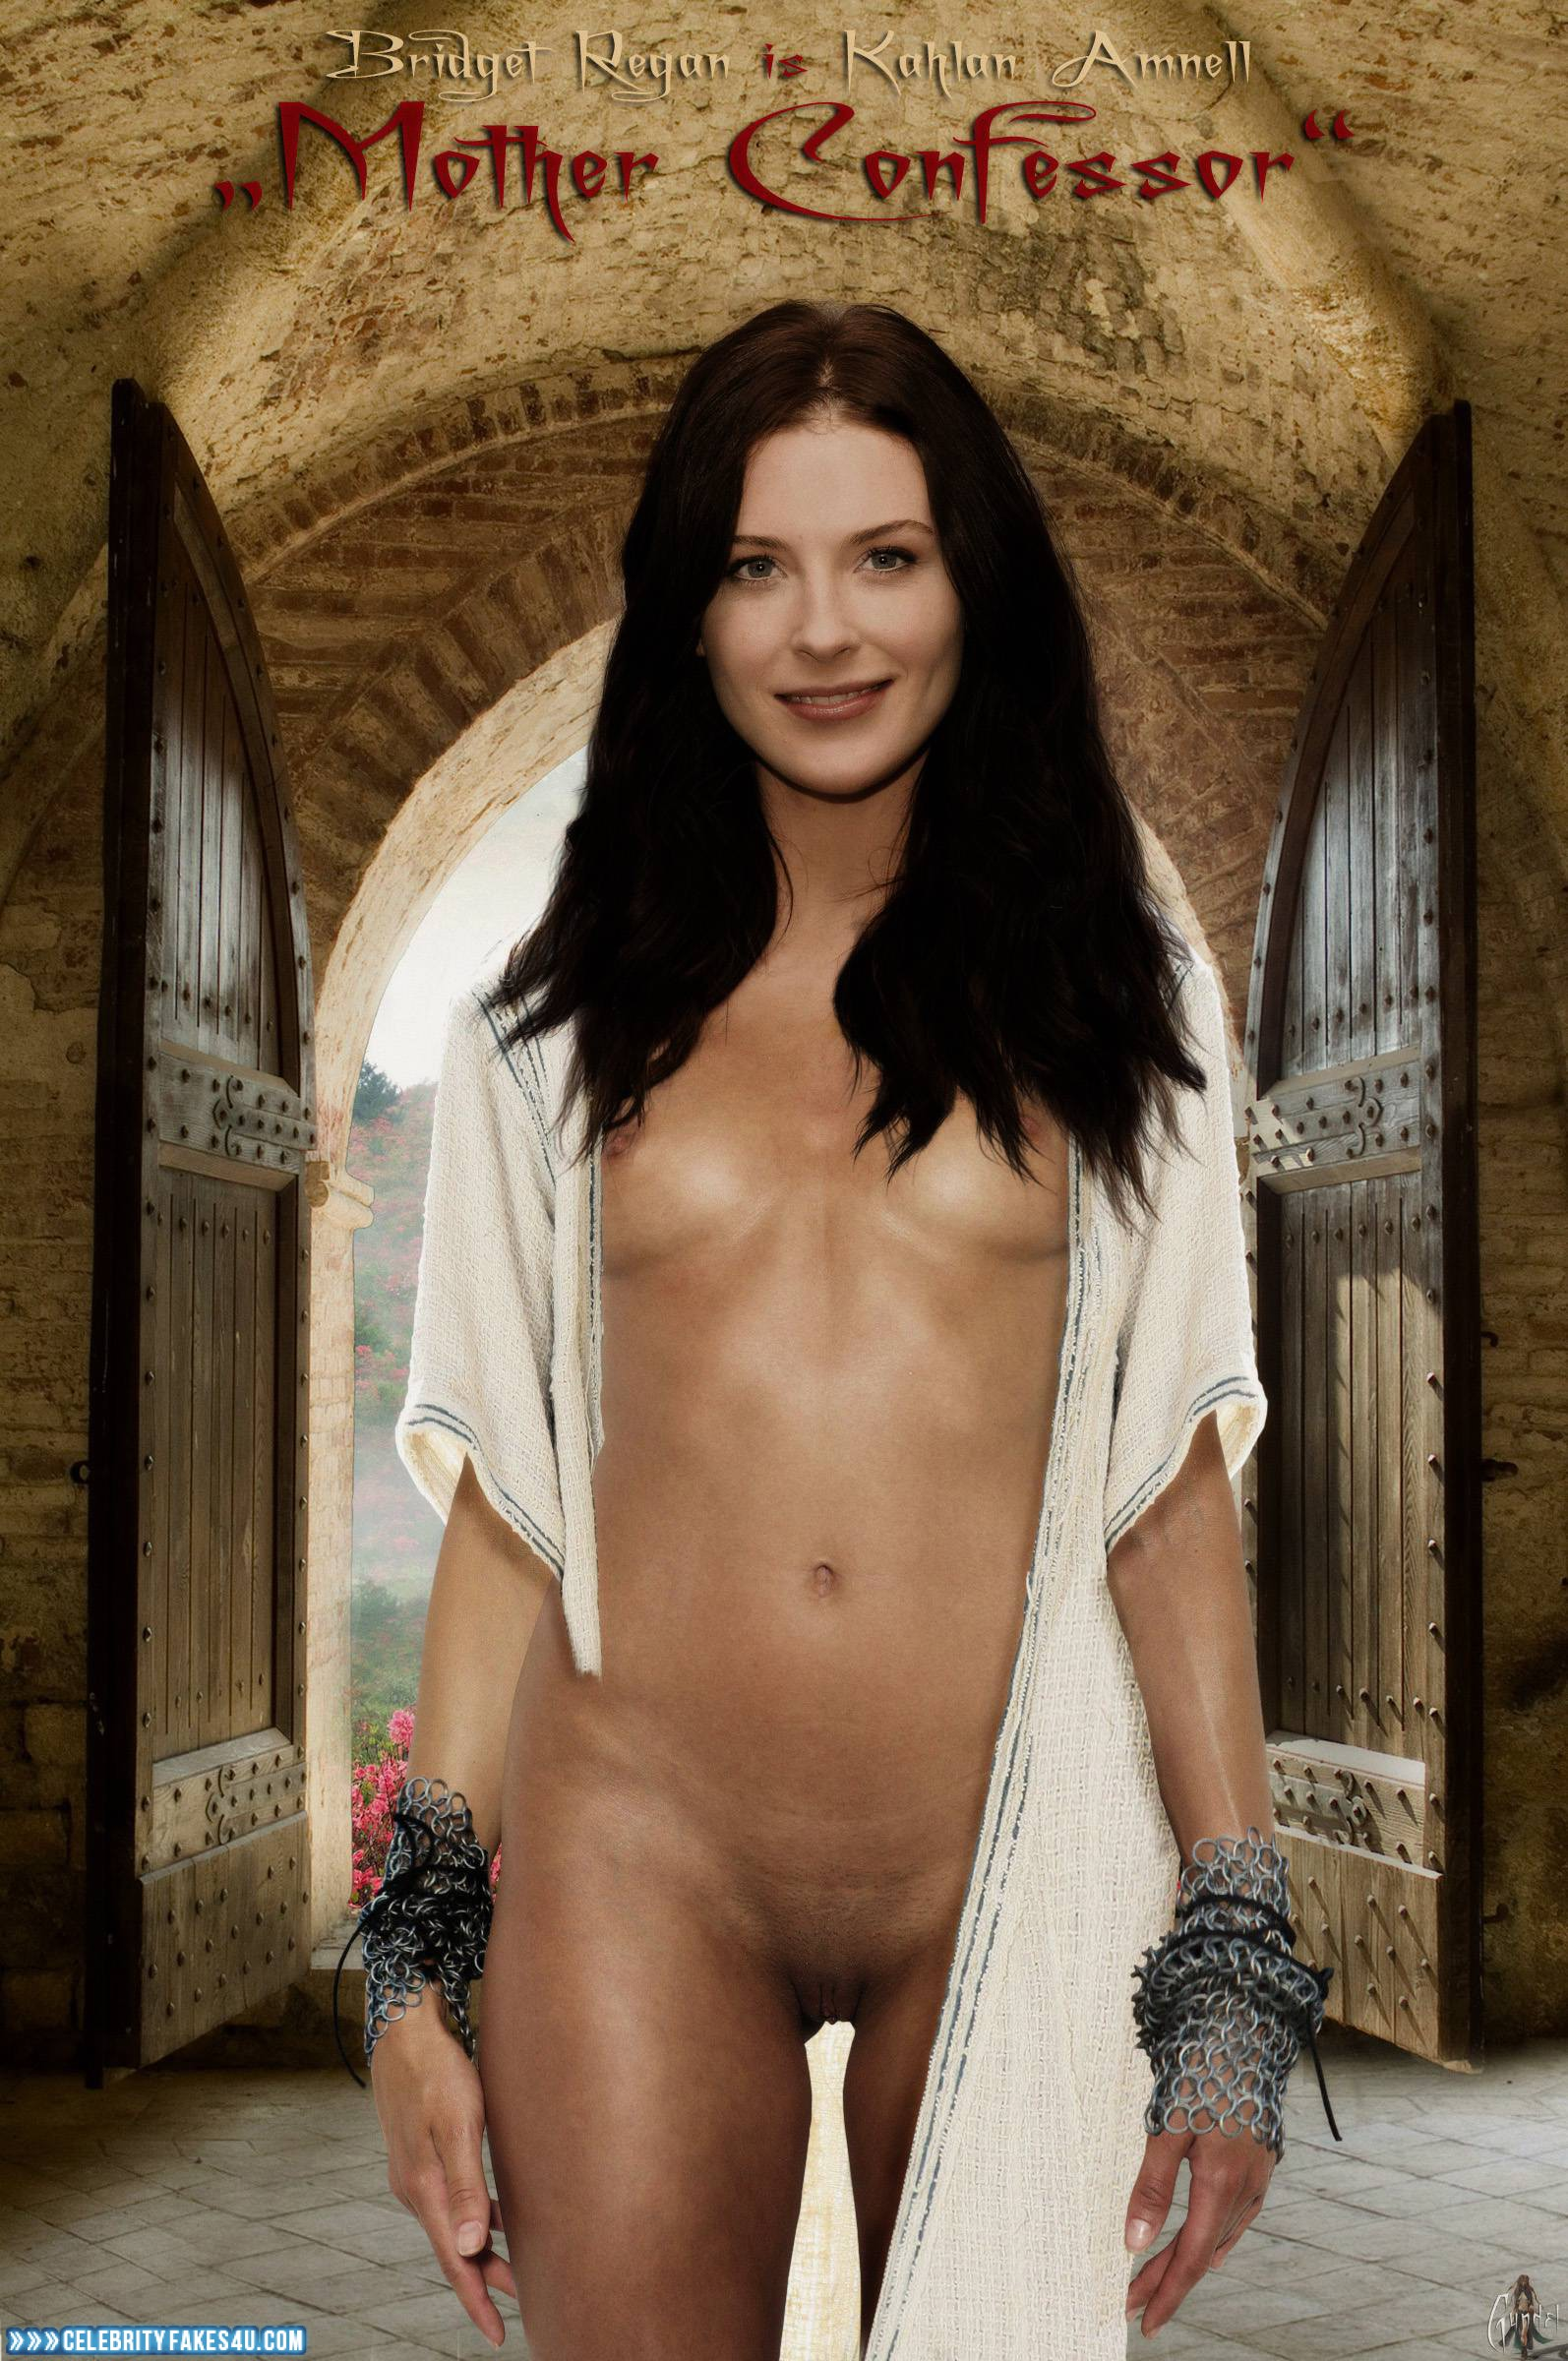 Bridget Regan Porno 30